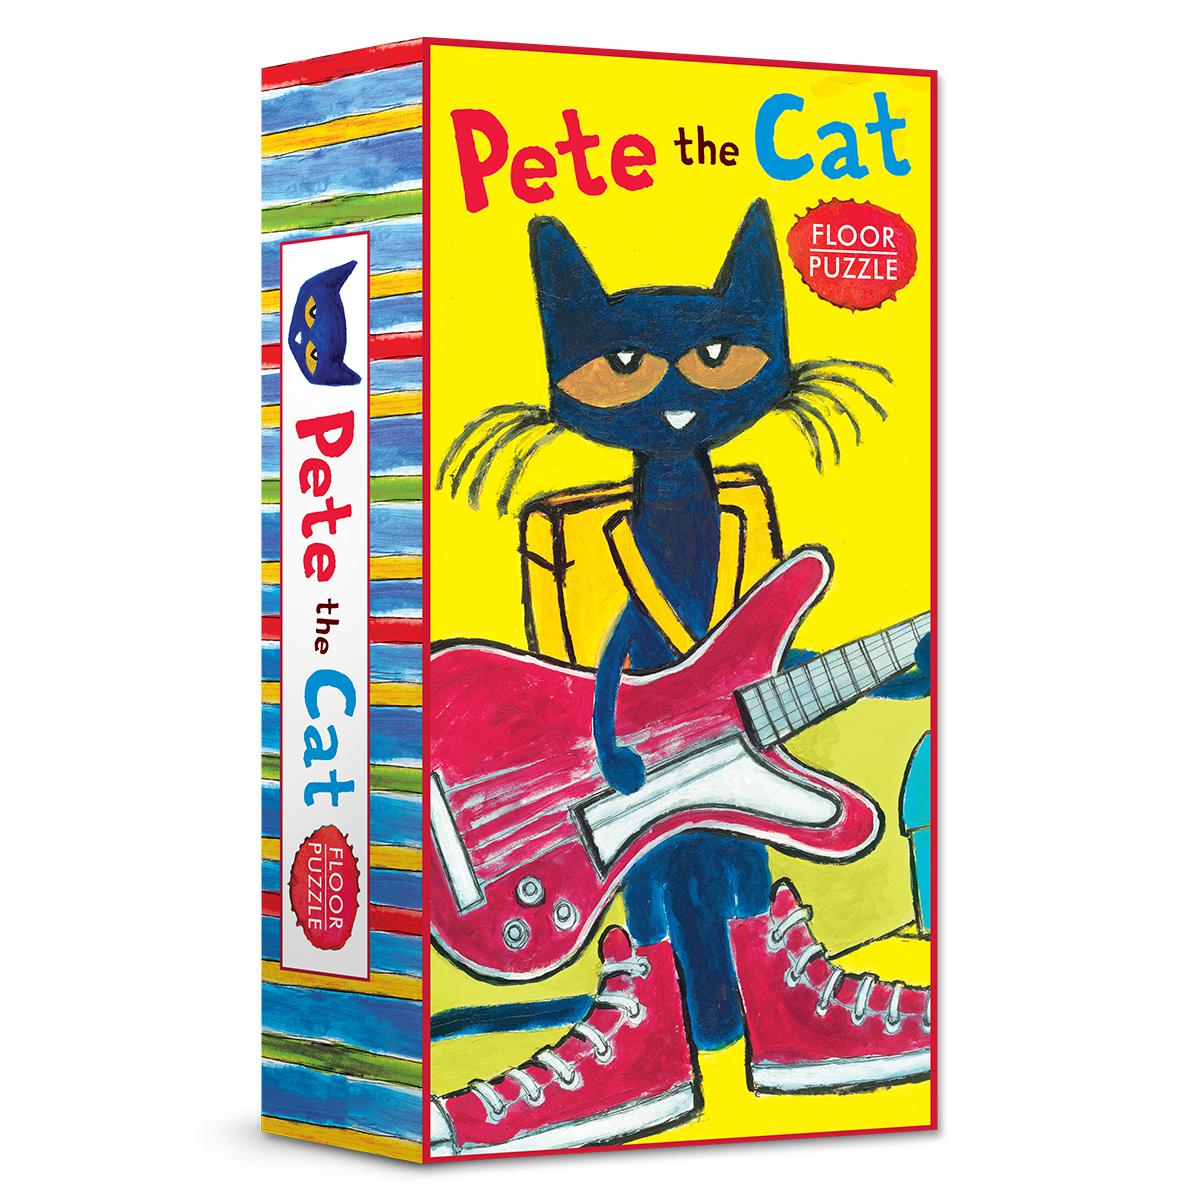 Pete the Cat Floor Puzzle